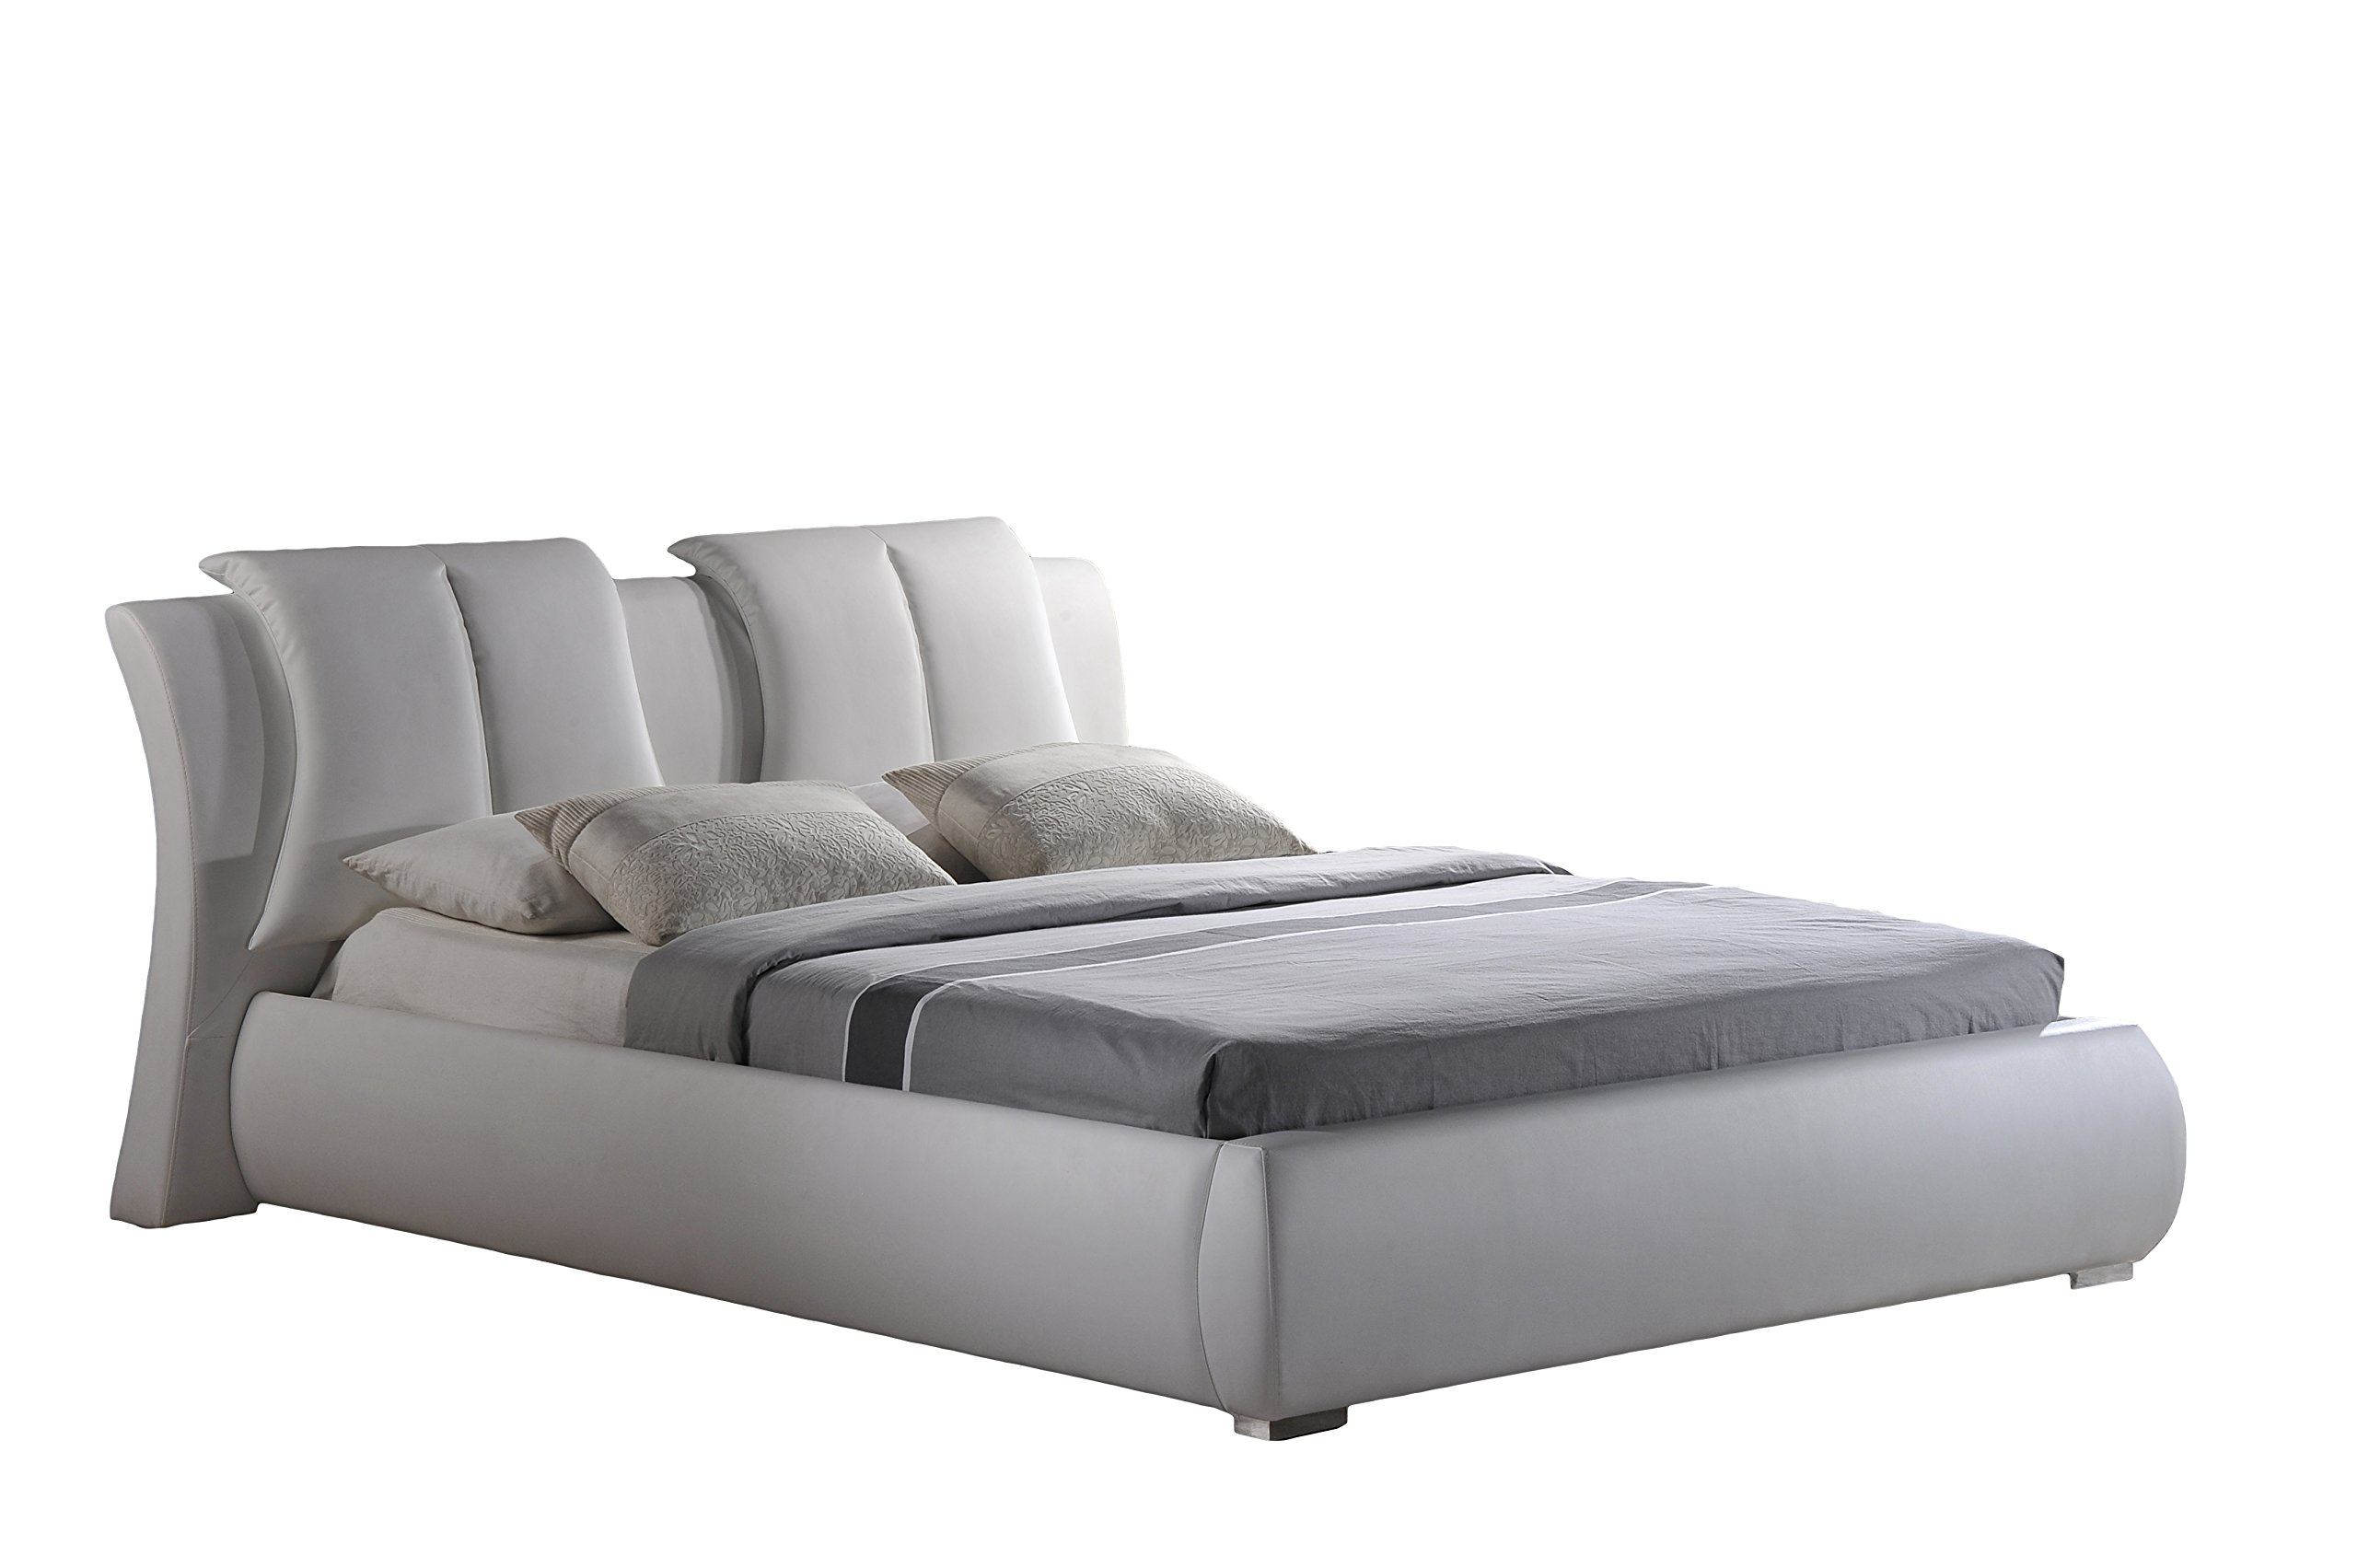 Global Furniture Upholstered Bed, Queen, White by Global Furniture USA